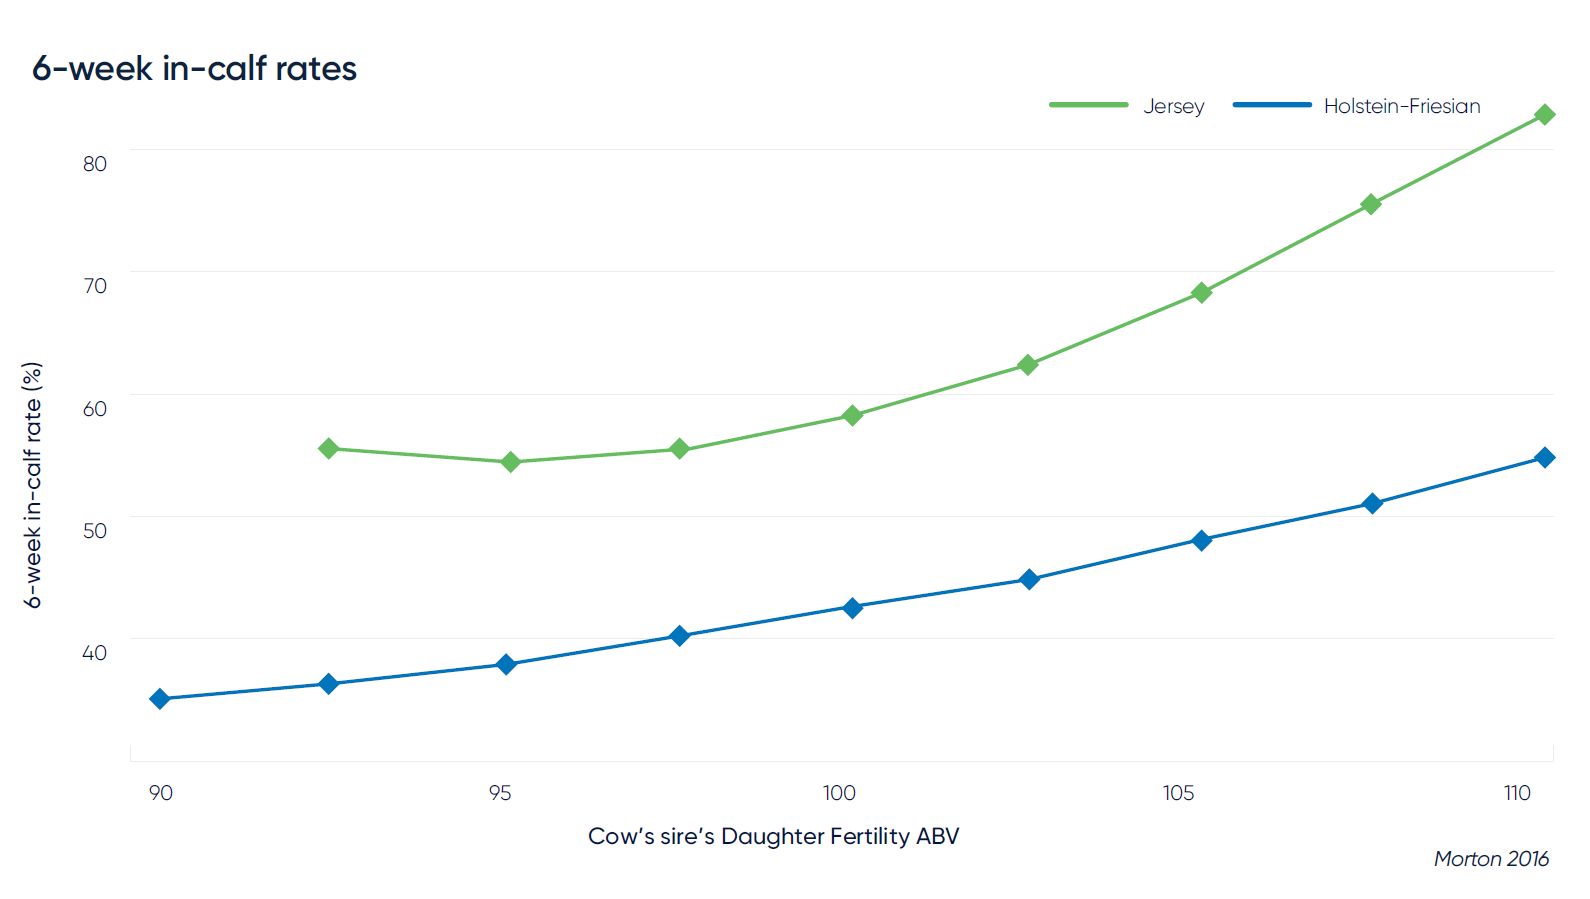 6-week in-calf rate (%) of Holstein and Jersey cows according to their sire's Daughter Fertility ABV